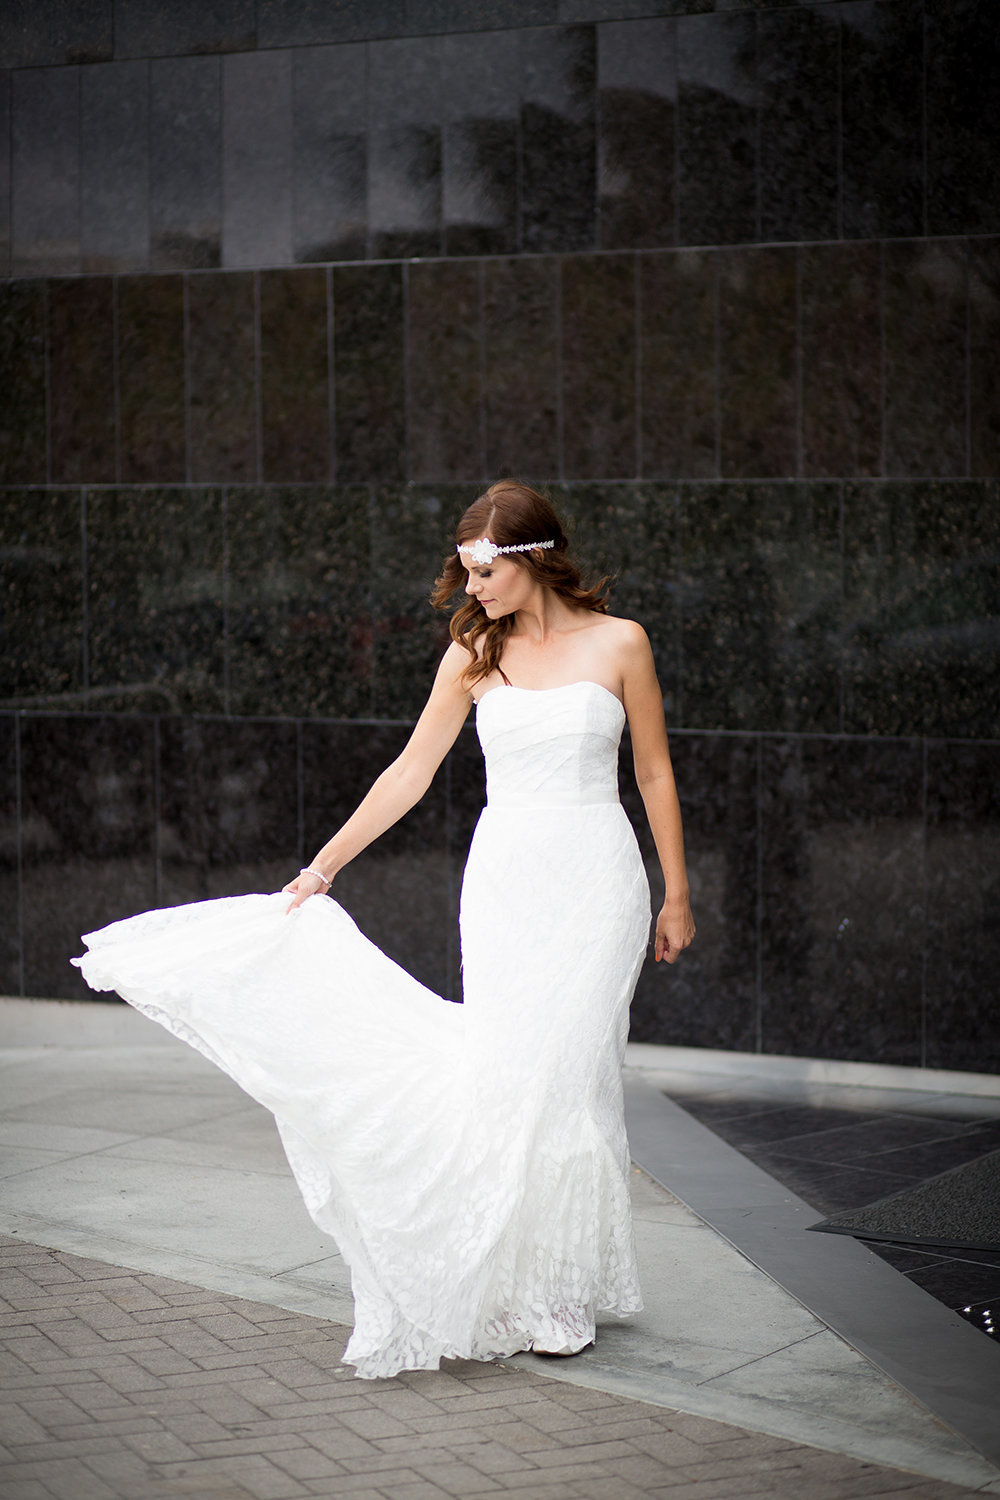 Modern location and elegant bride